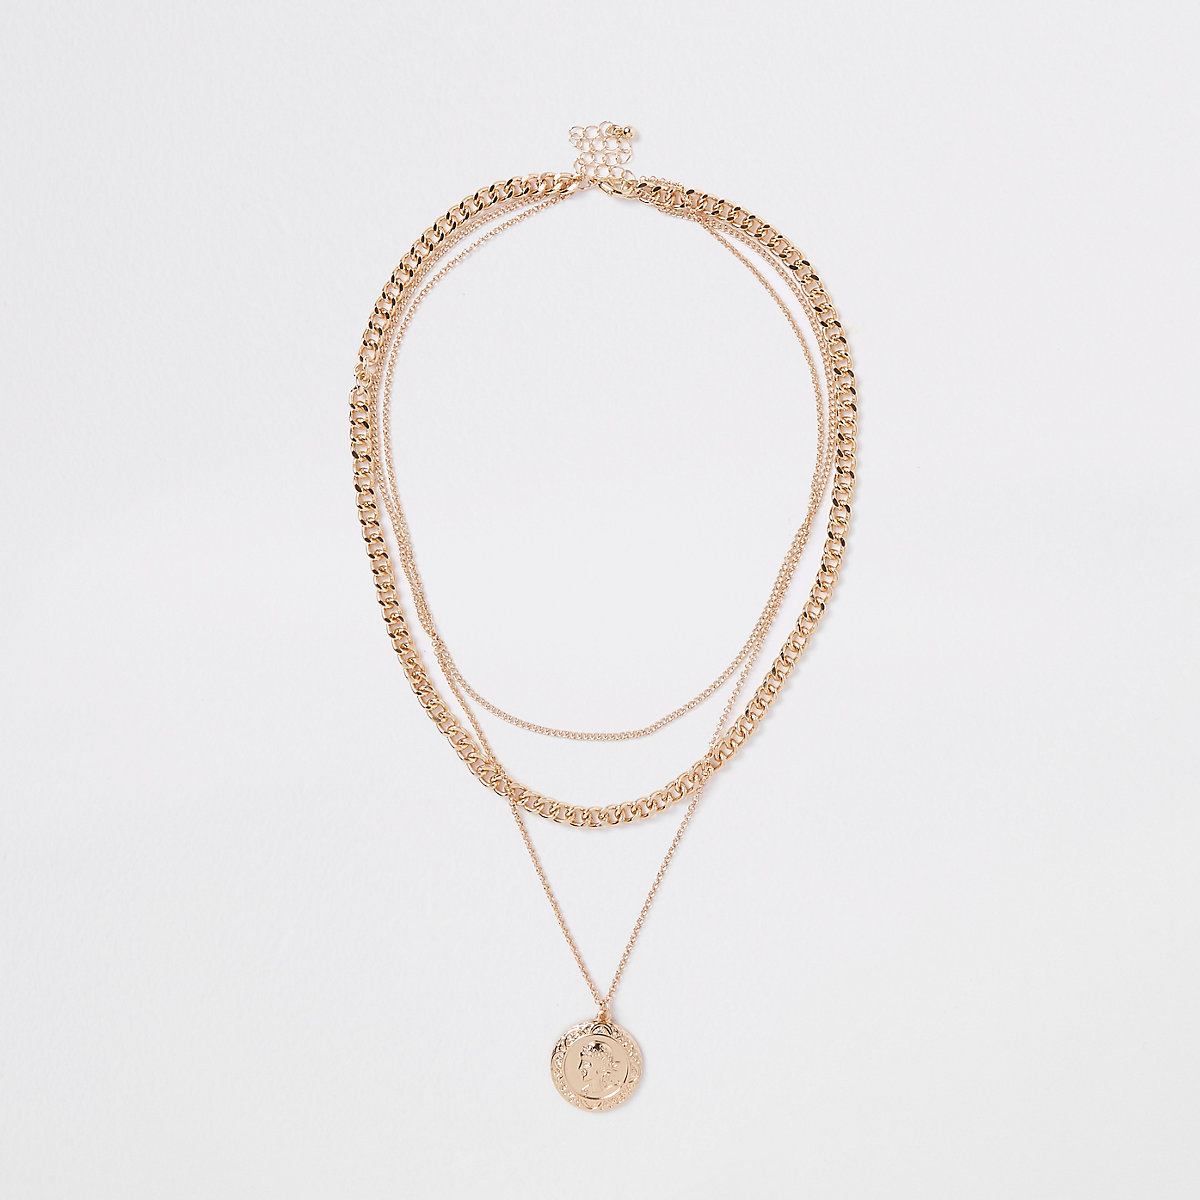 Gold tone pendant and chain layered necklace